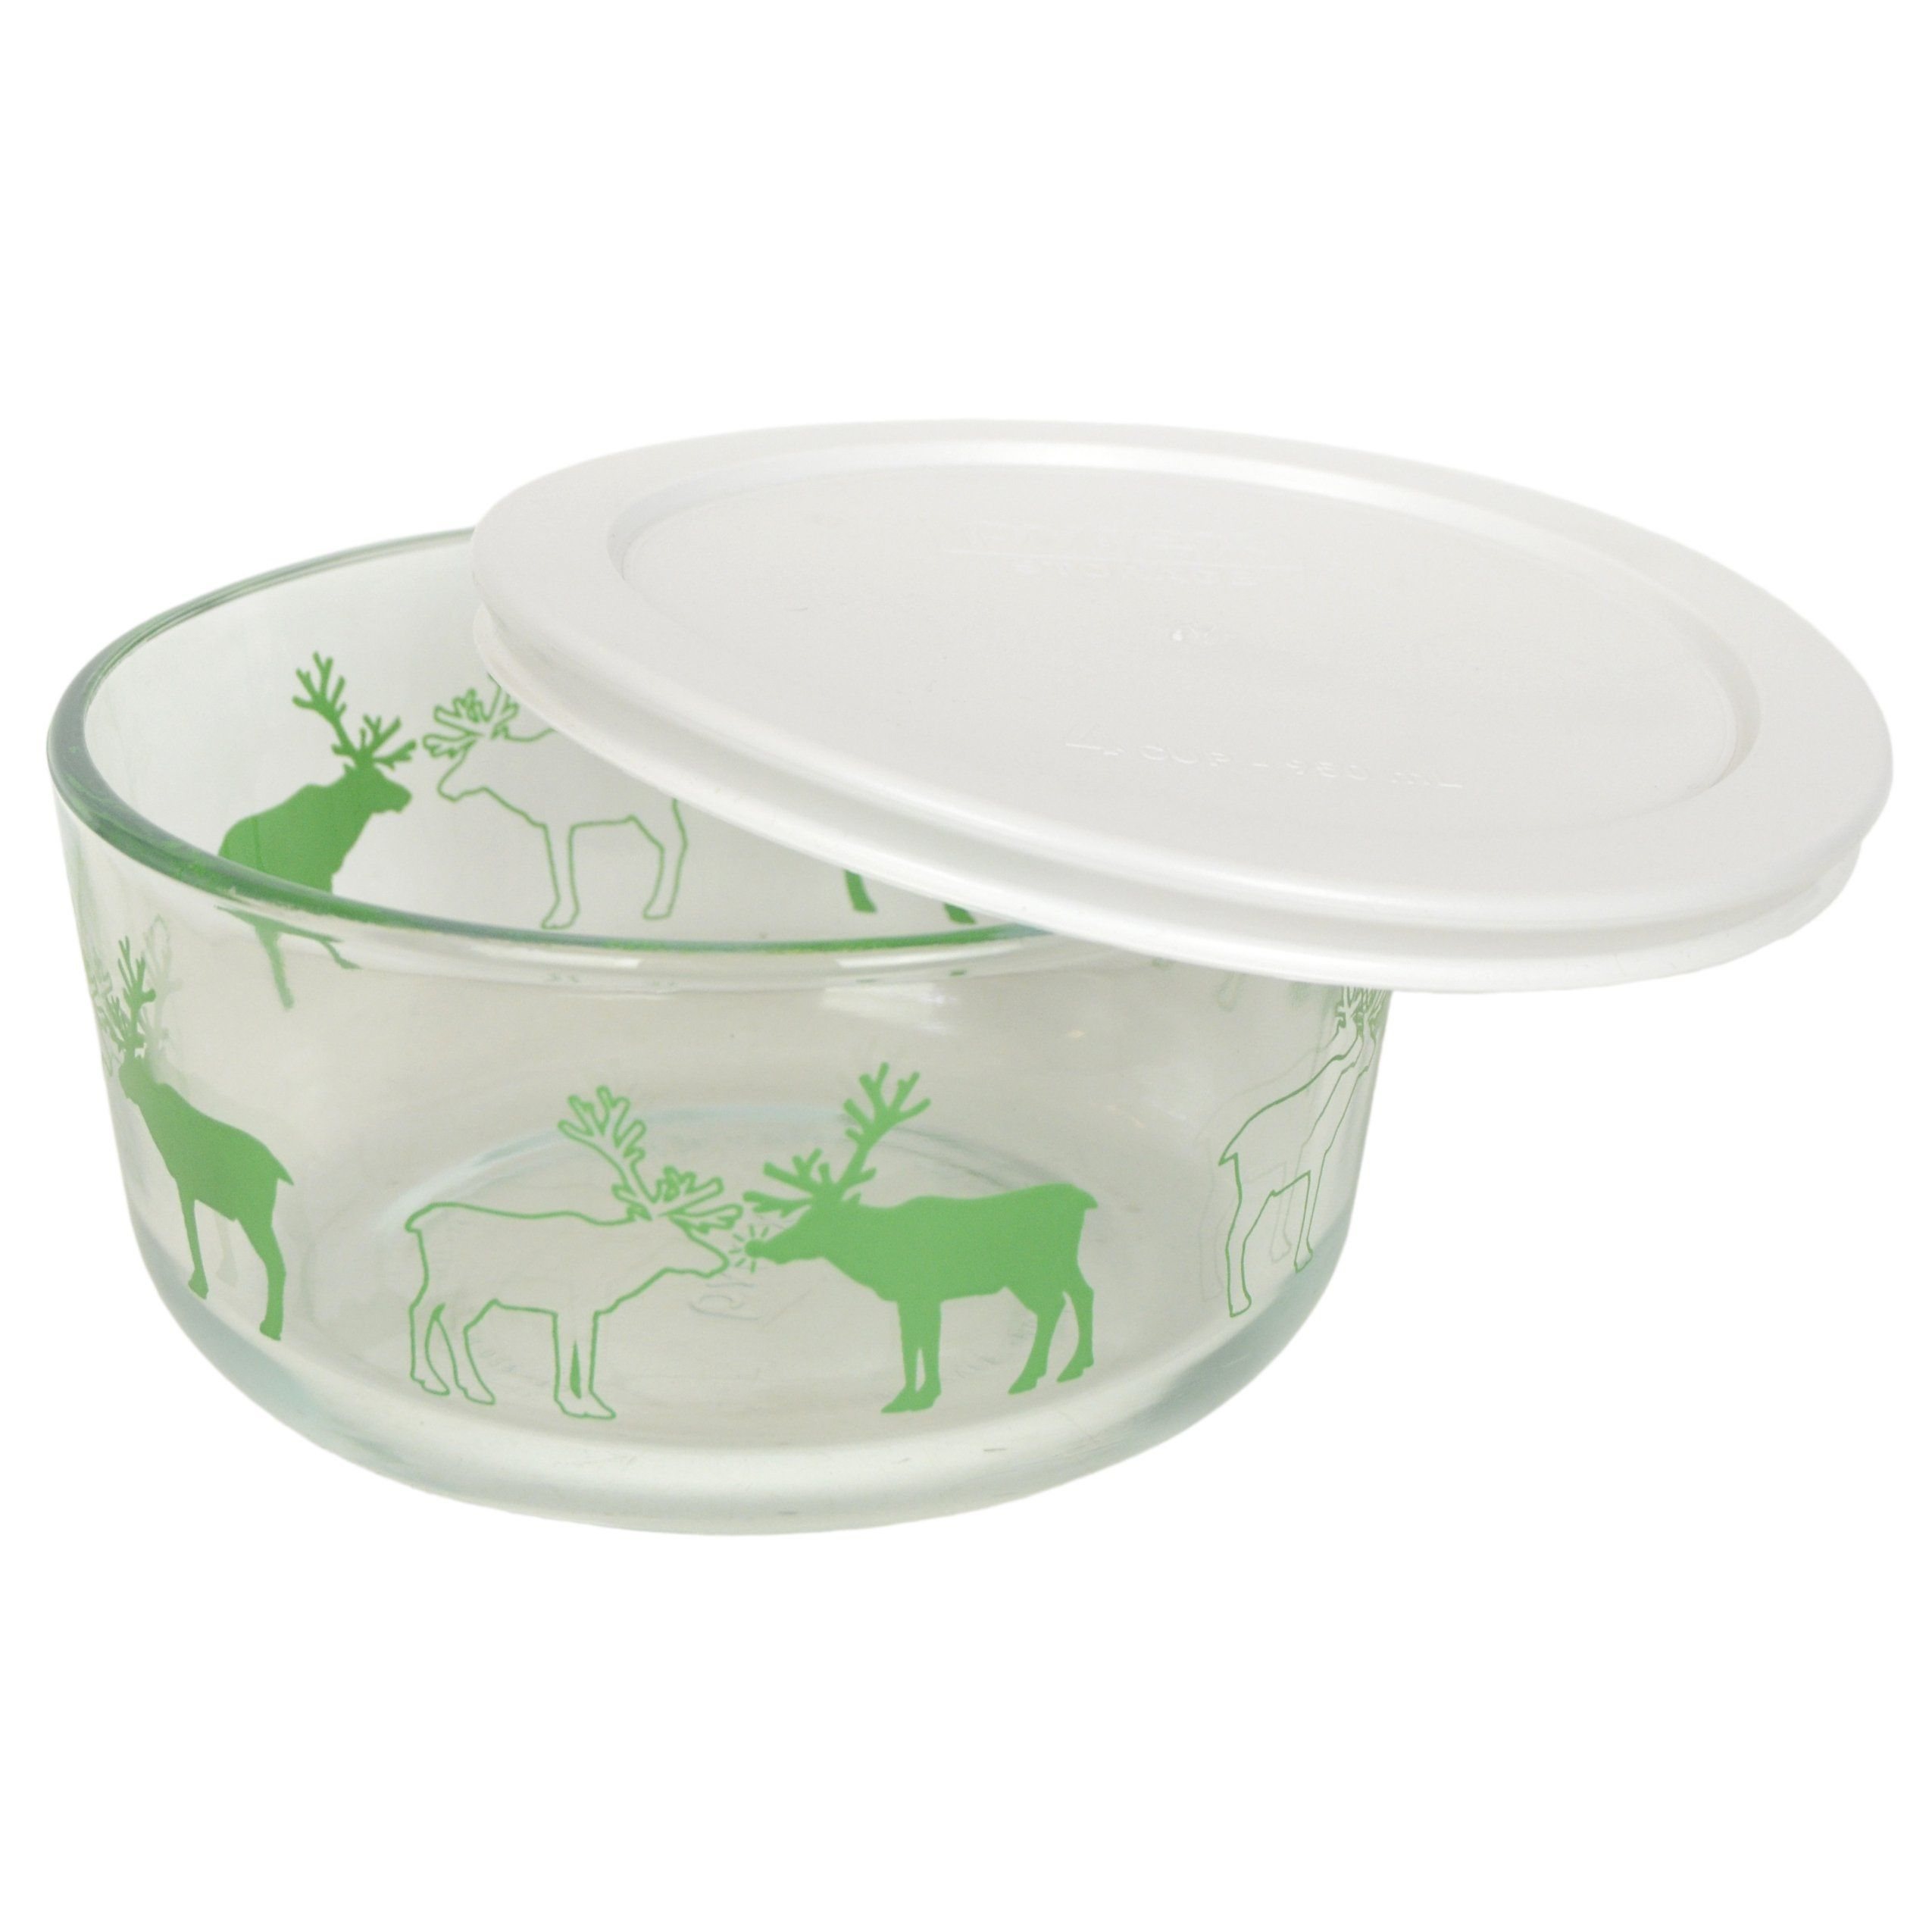 Pyrex 7201 4 Cup Reindeer Glass Bowl and 7201PC White Lid